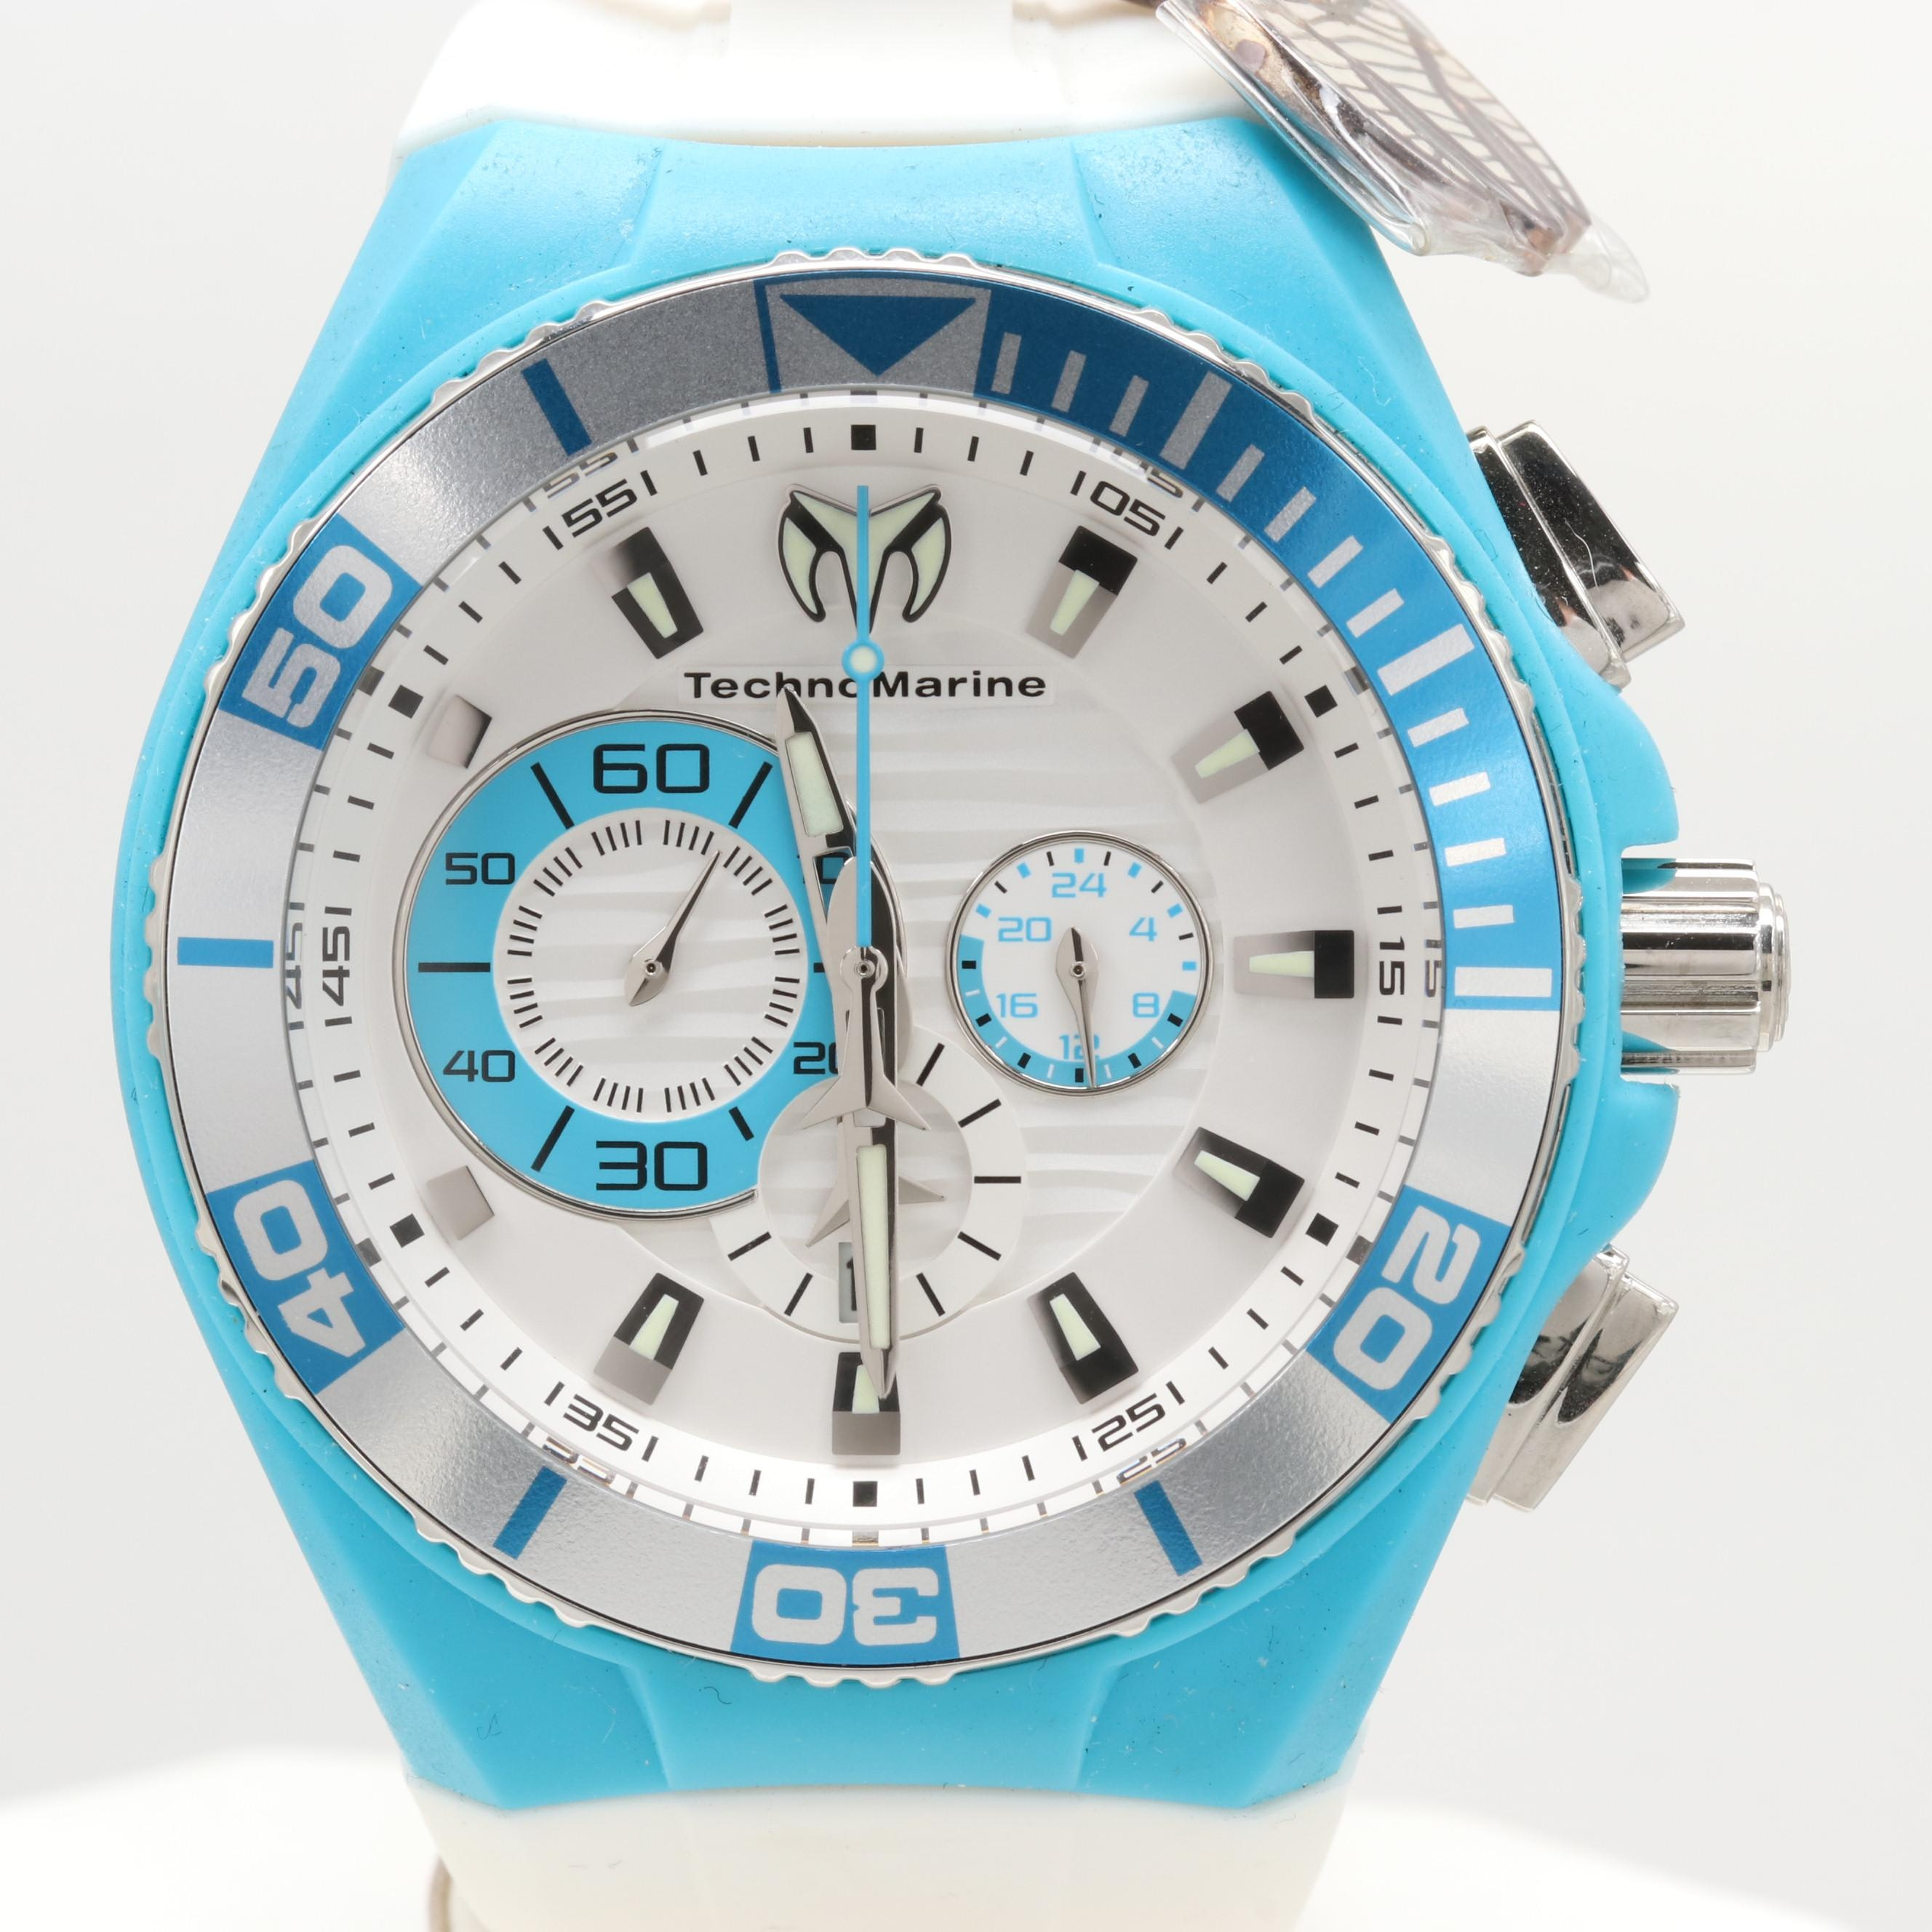 Technomarine Stainless Steel Cruise Locker Charm Wristwatch